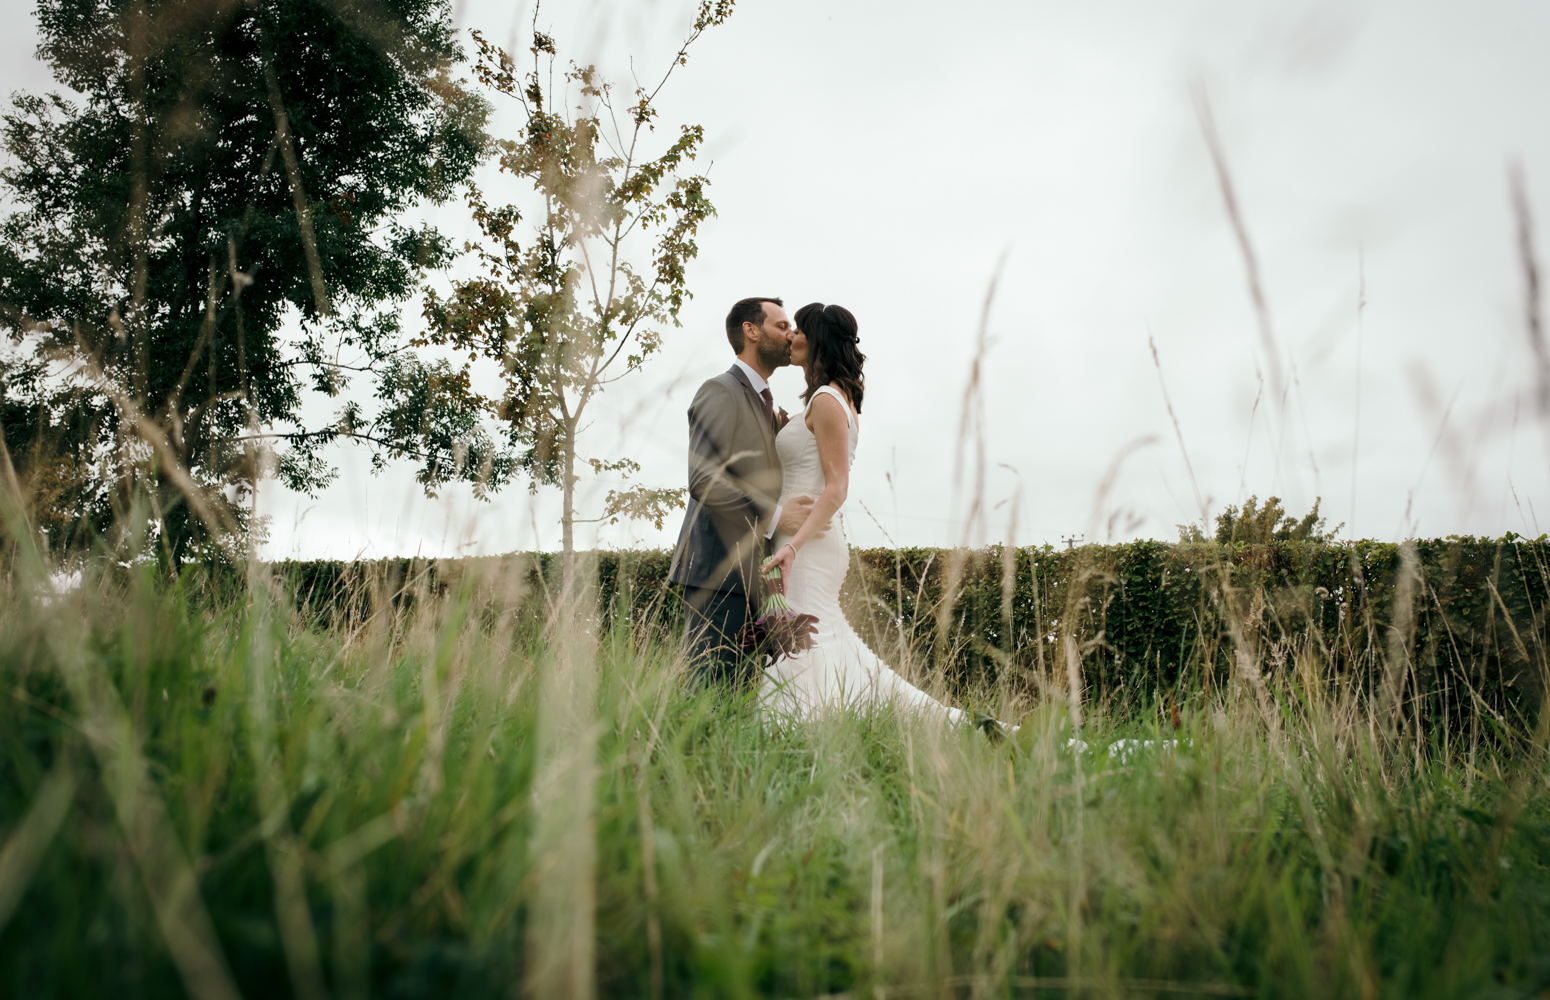 The bride and groom standing in the garden during a portrait session